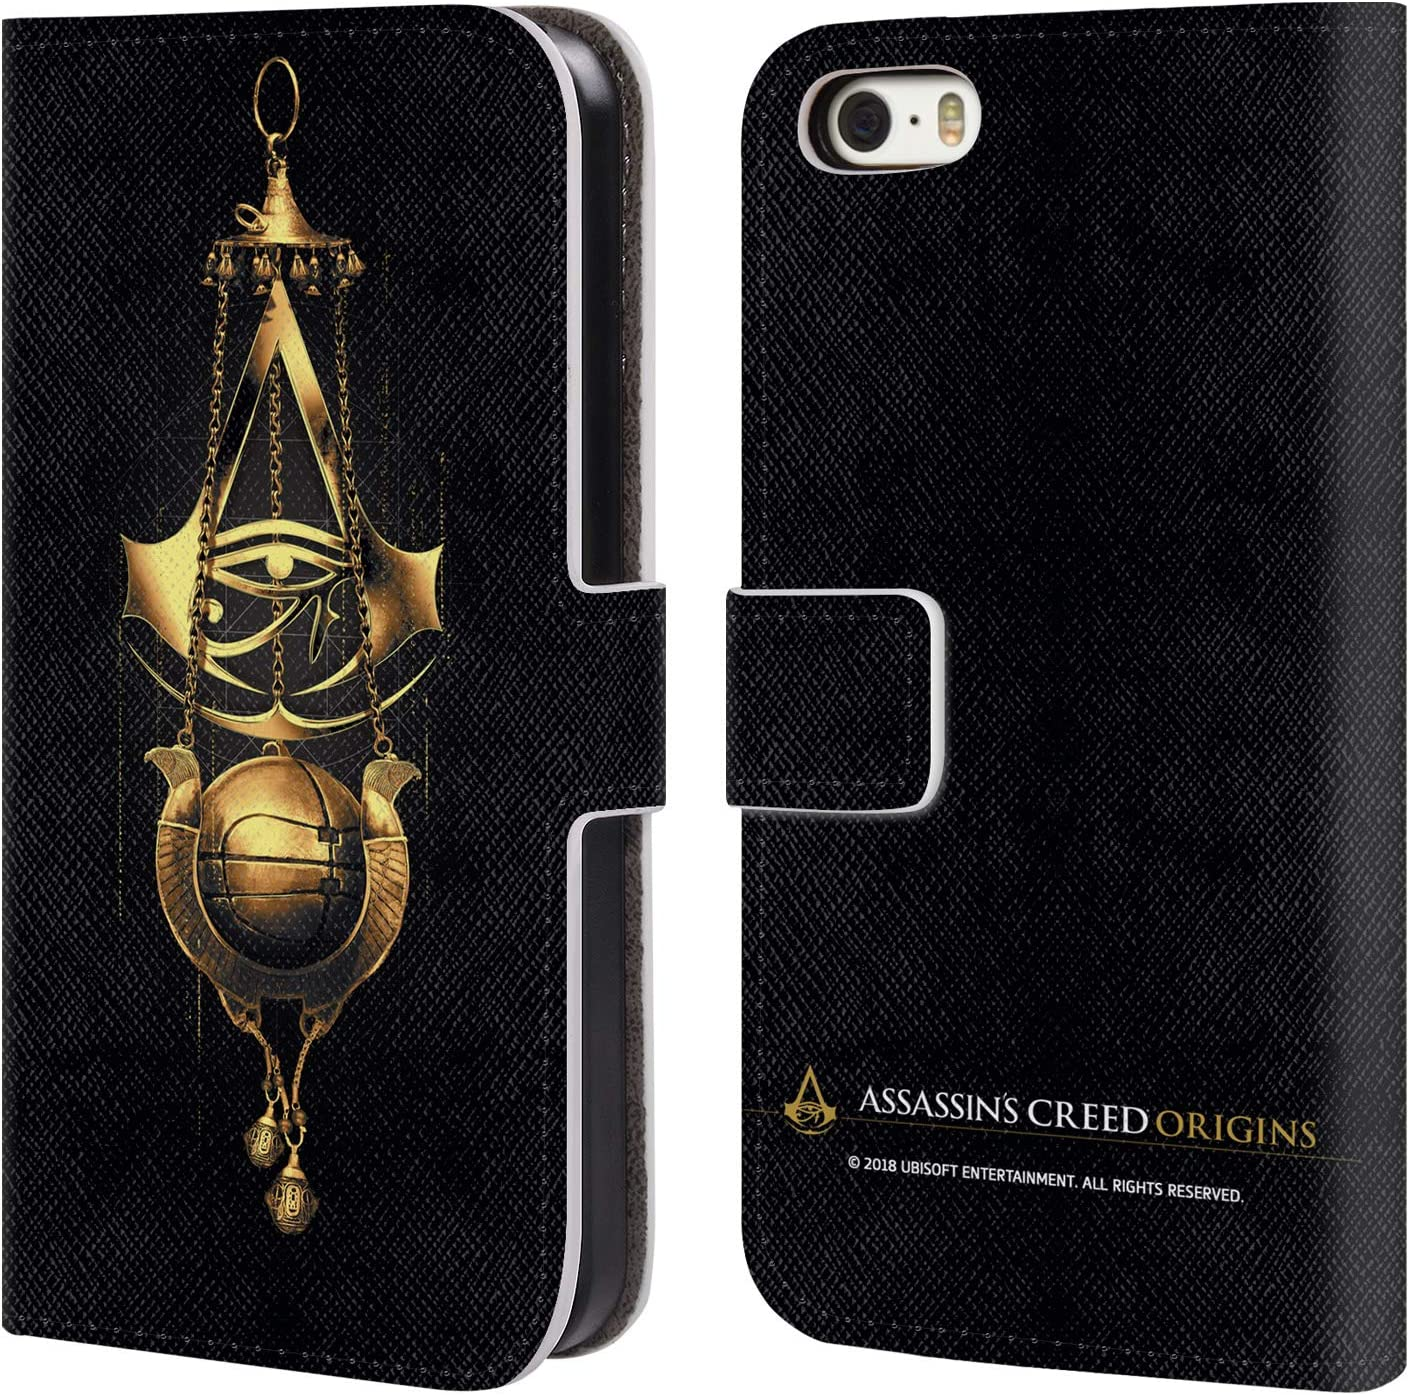 Head Case Designs Officially Licensed Assassin's Creed Piece of Eden Origins Crests Leather Book Wallet Case Cover Compatible with Apple iPhone 5 / iPhone 5s / iPhone SE 2016